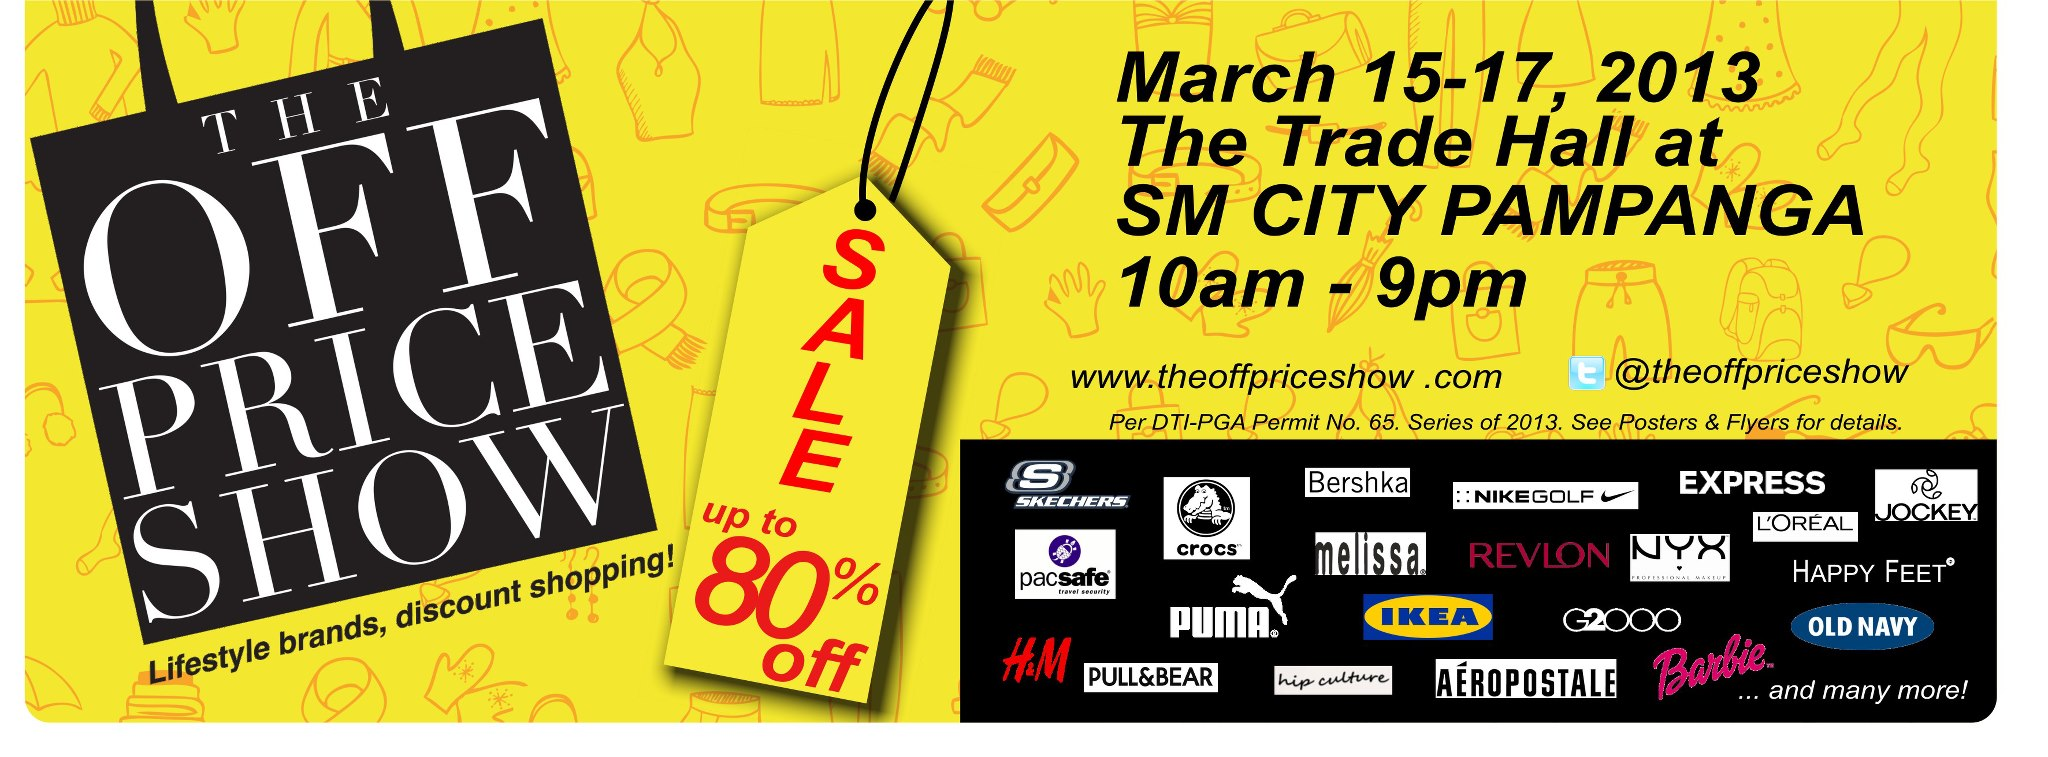 The Off Price Show at SM City Pampanga March 2013